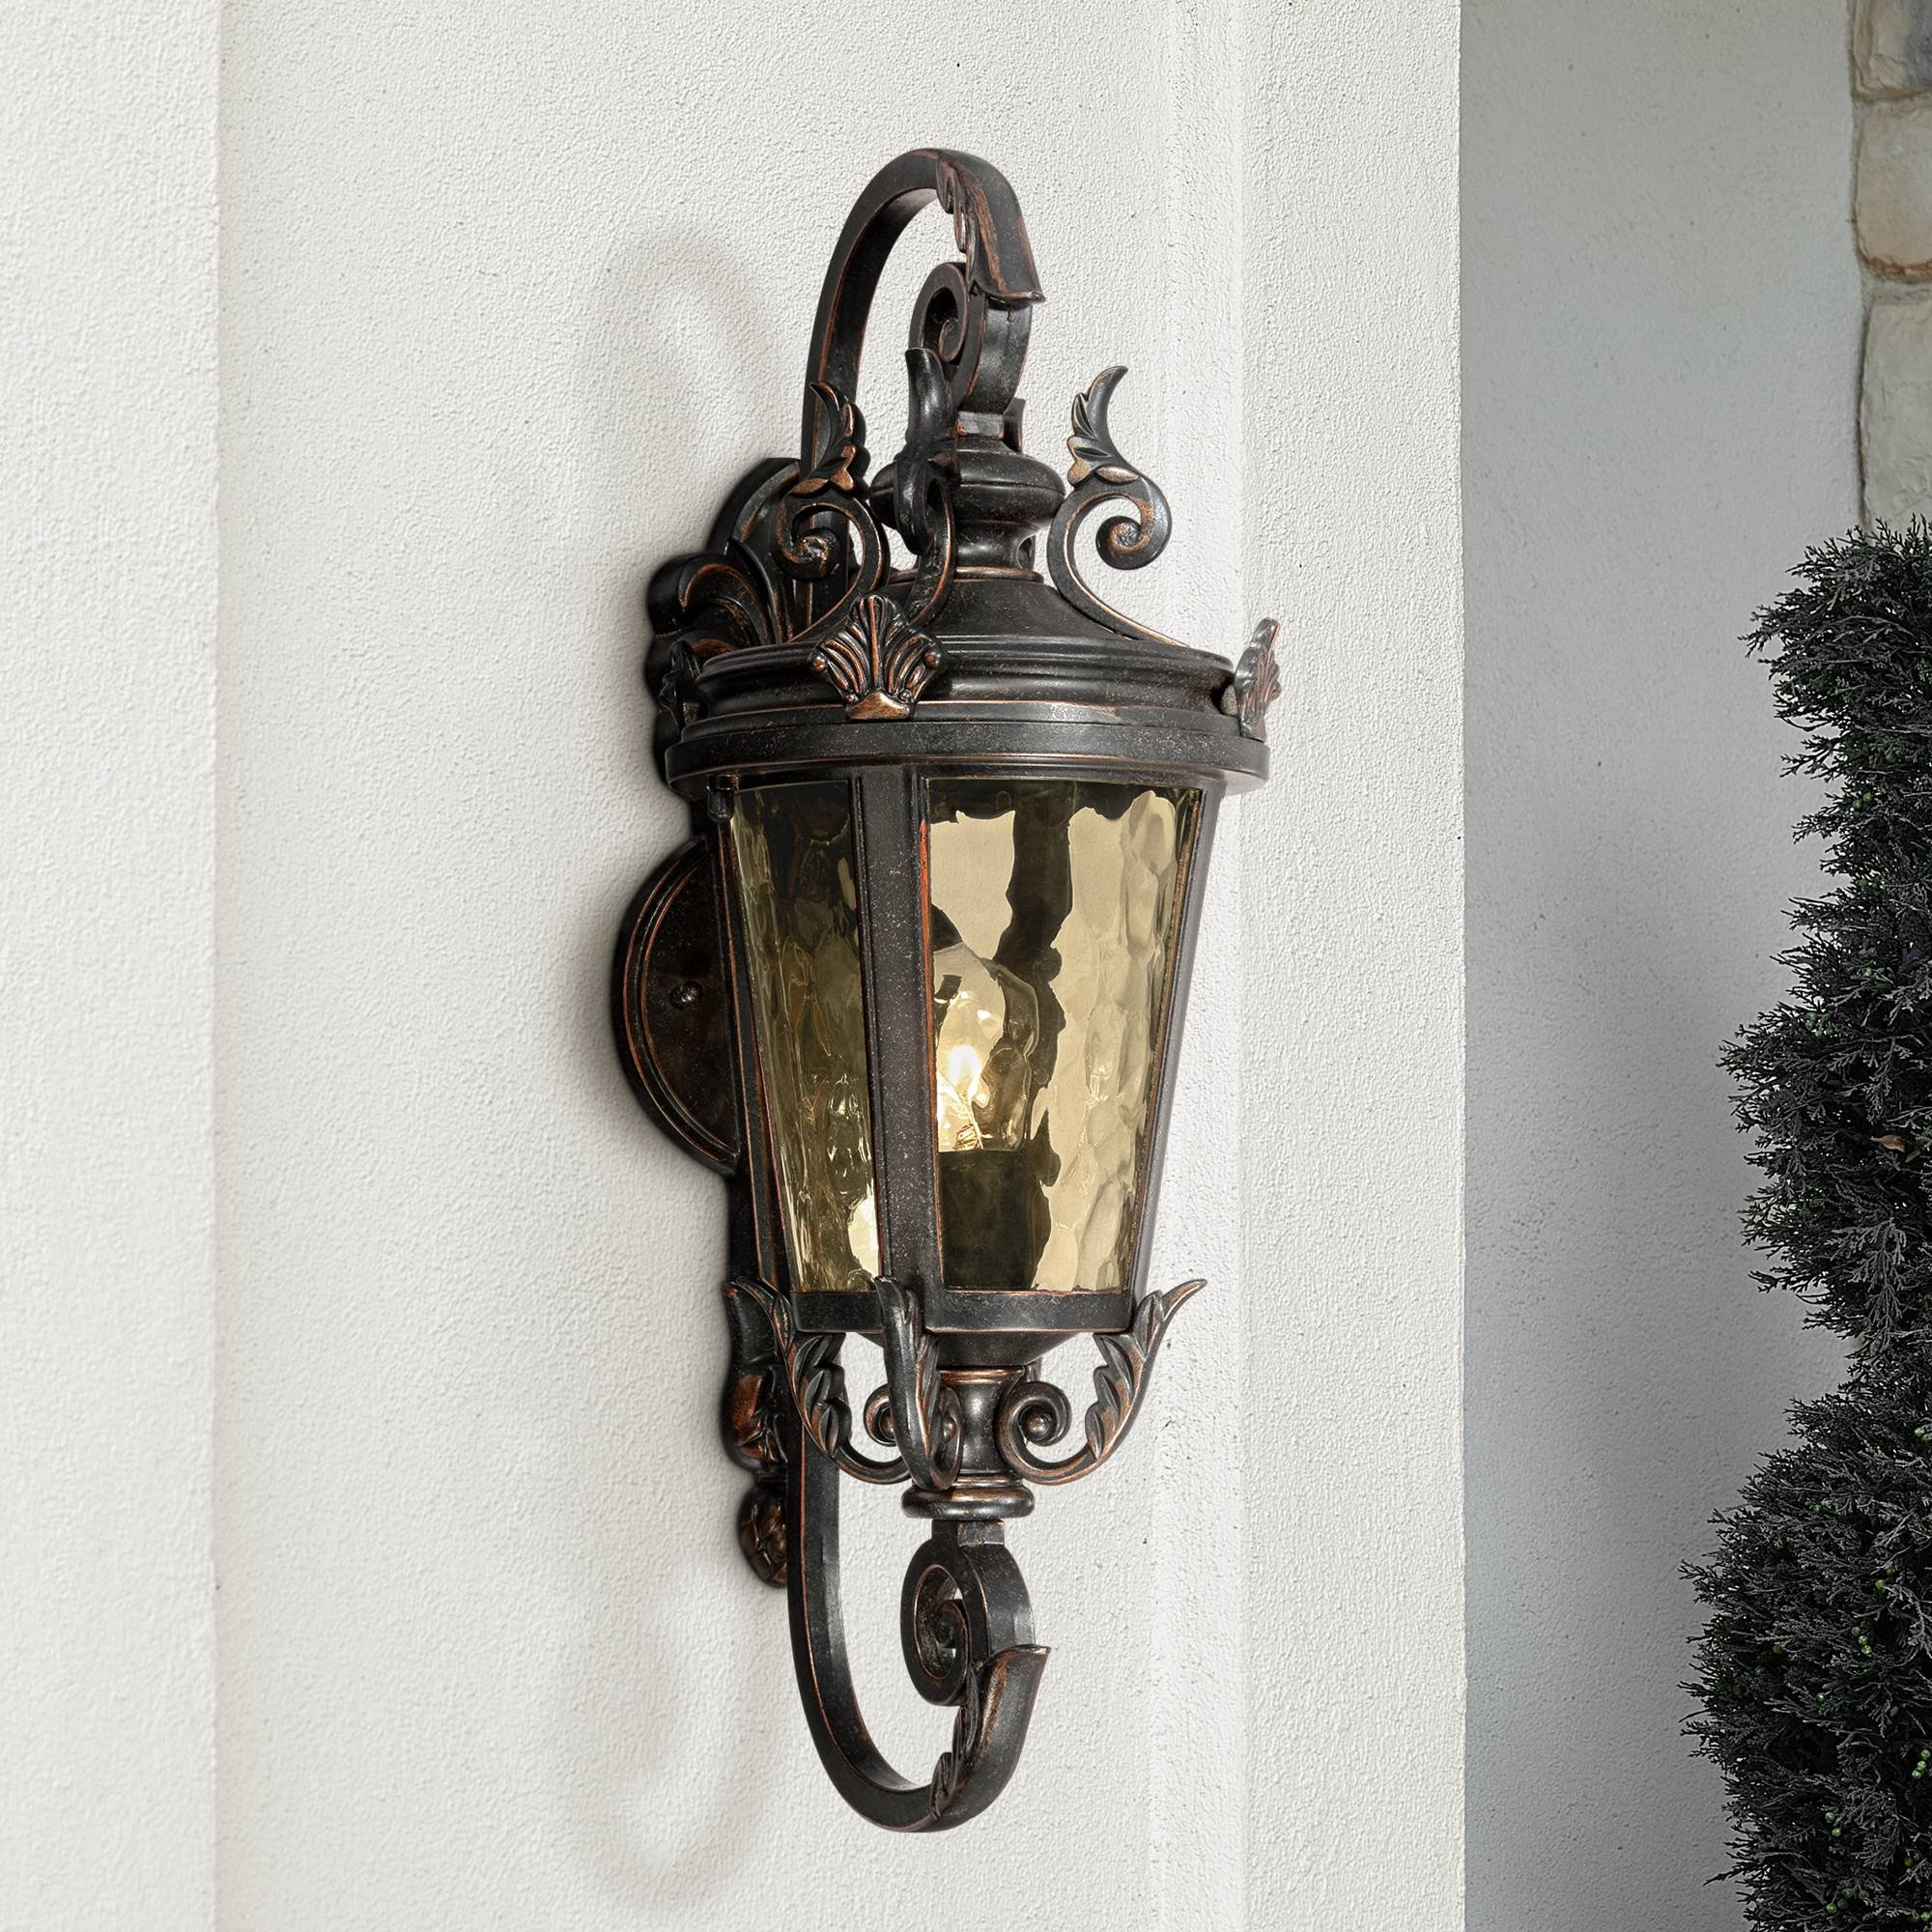 Casa Marseille Vintage Outdoor Wall Light Bronze French Vintage Sconce Fixture for Home Porch Patio - John Timberland